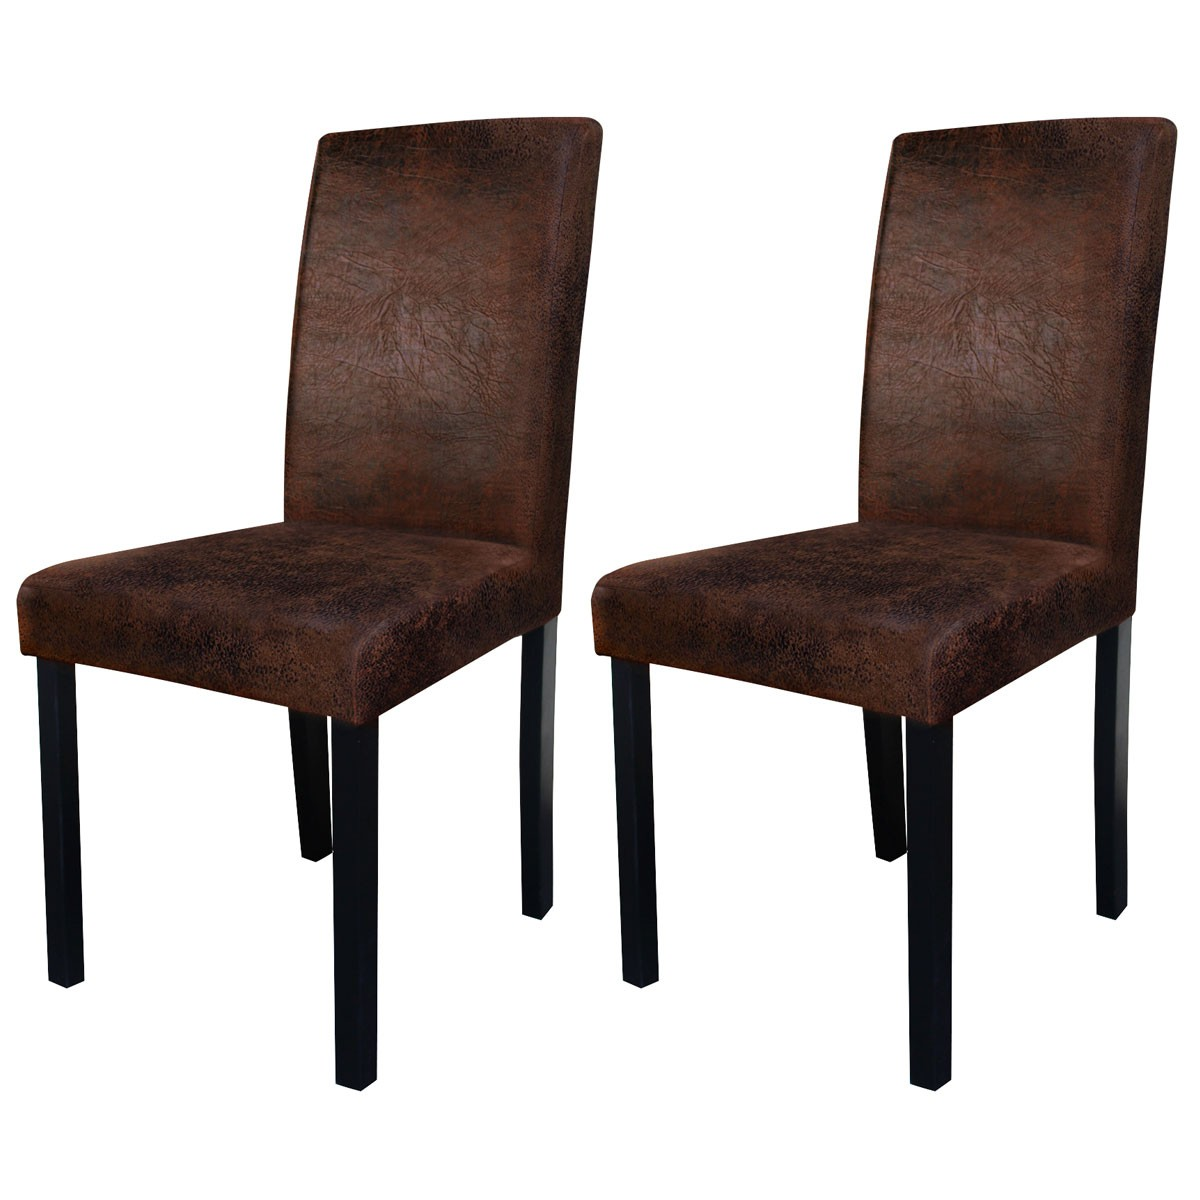 chaise havane marron vieilli lot de 2 choisissez nos chaises havane marron vieilli lot de 2. Black Bedroom Furniture Sets. Home Design Ideas